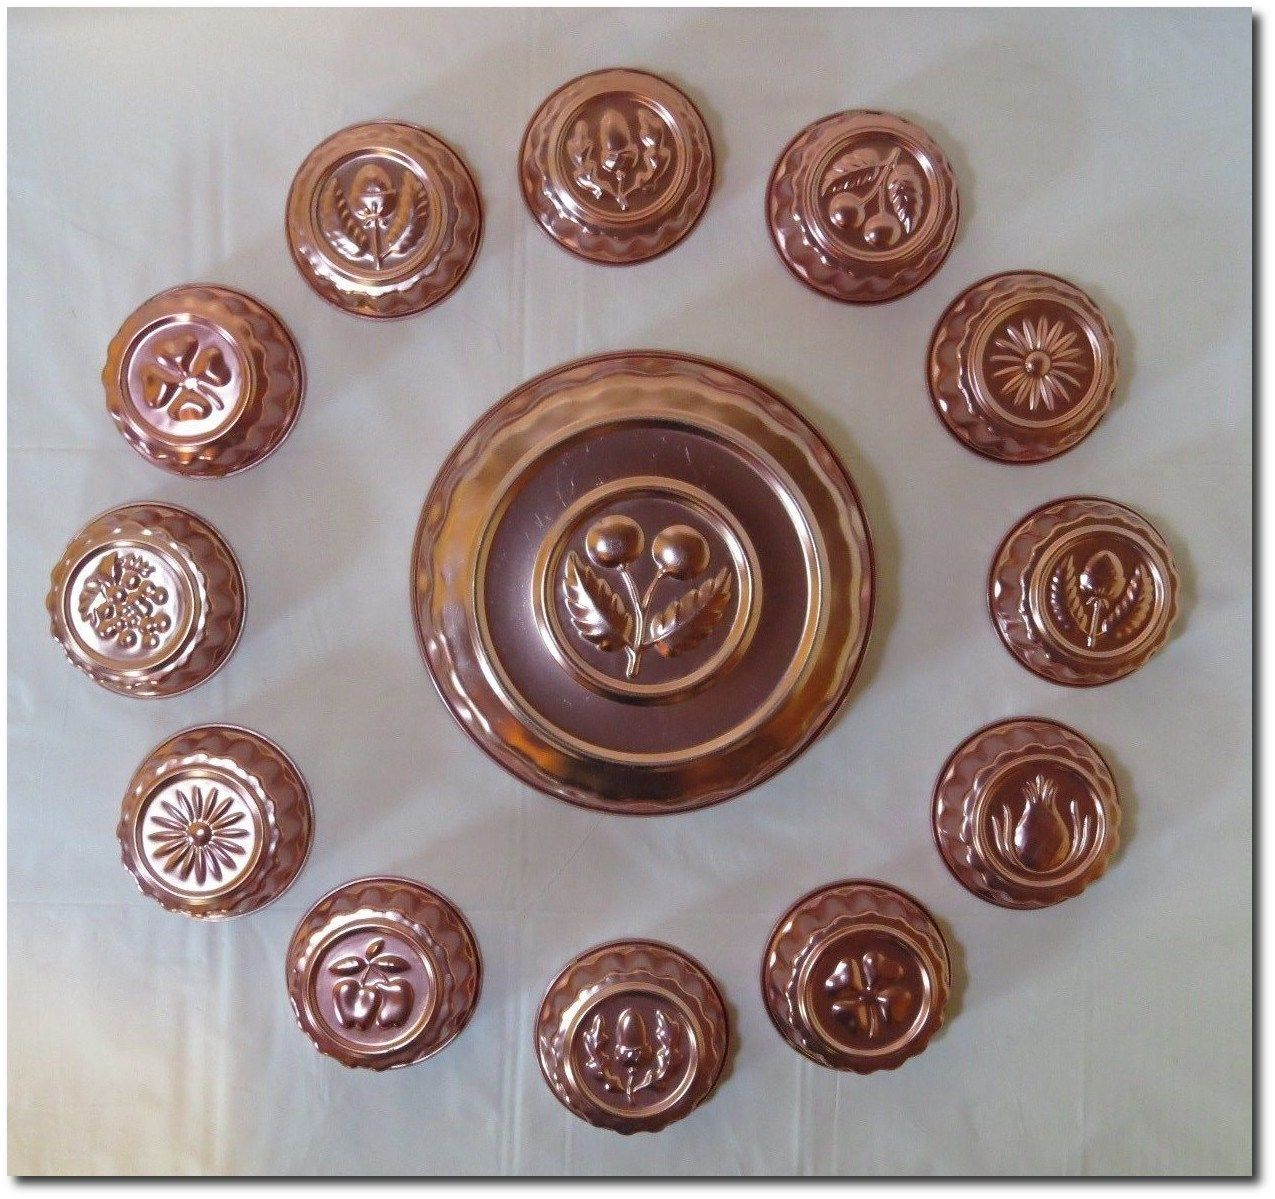 VINTAGE-LOT-OF-13-COPPER-JELLO-MOLDS-ONE-LARGE.jpg (1275×1199)